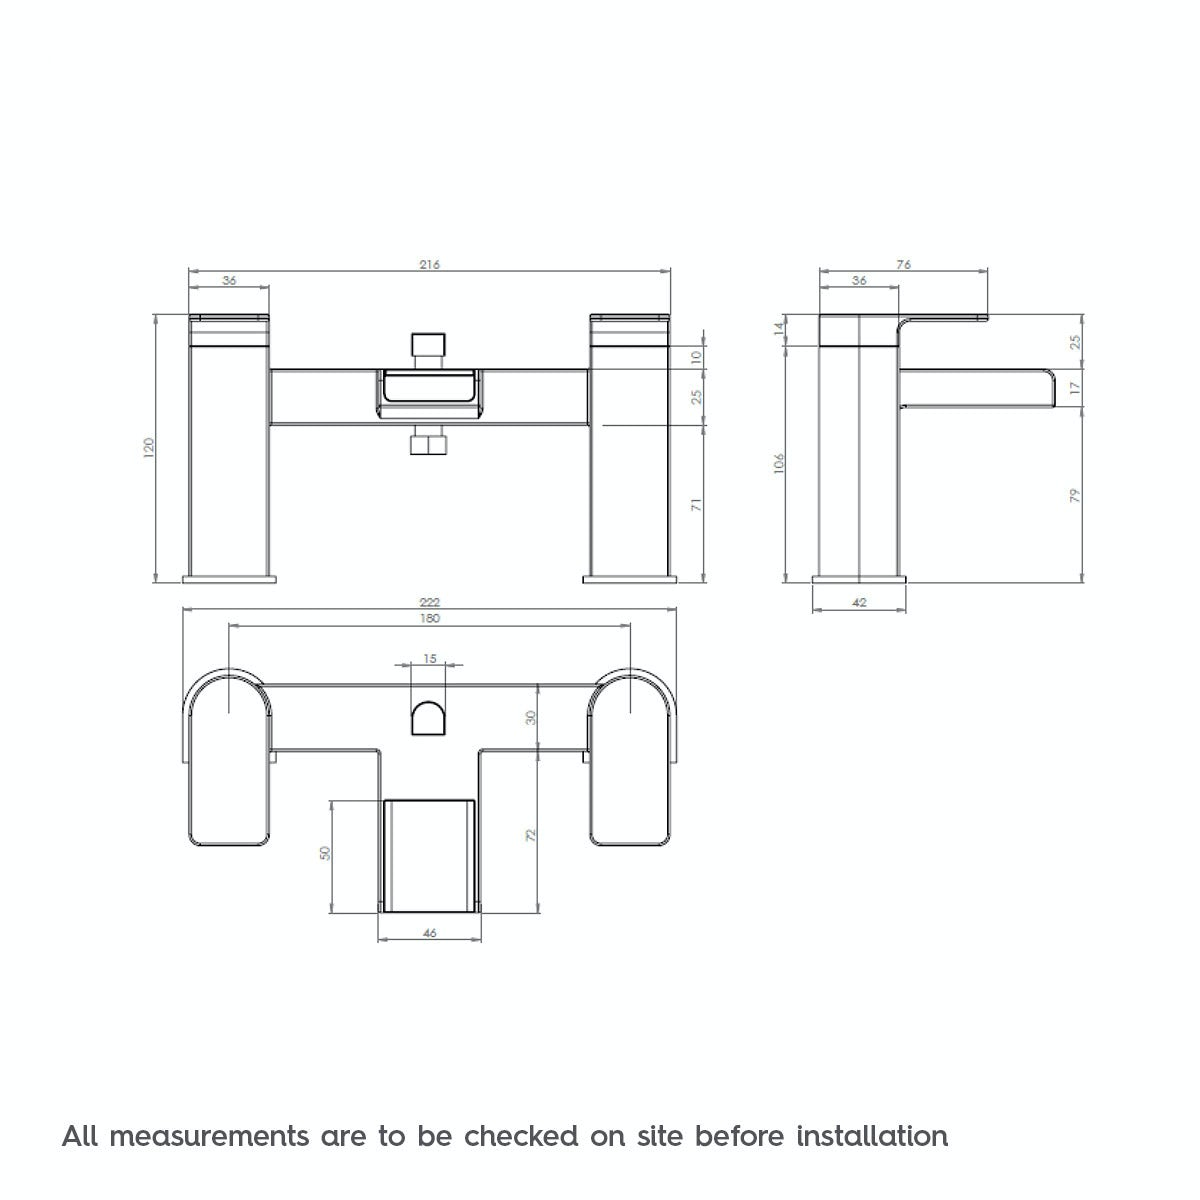 Dimensions for Mode Freemont bath shower mixer tap